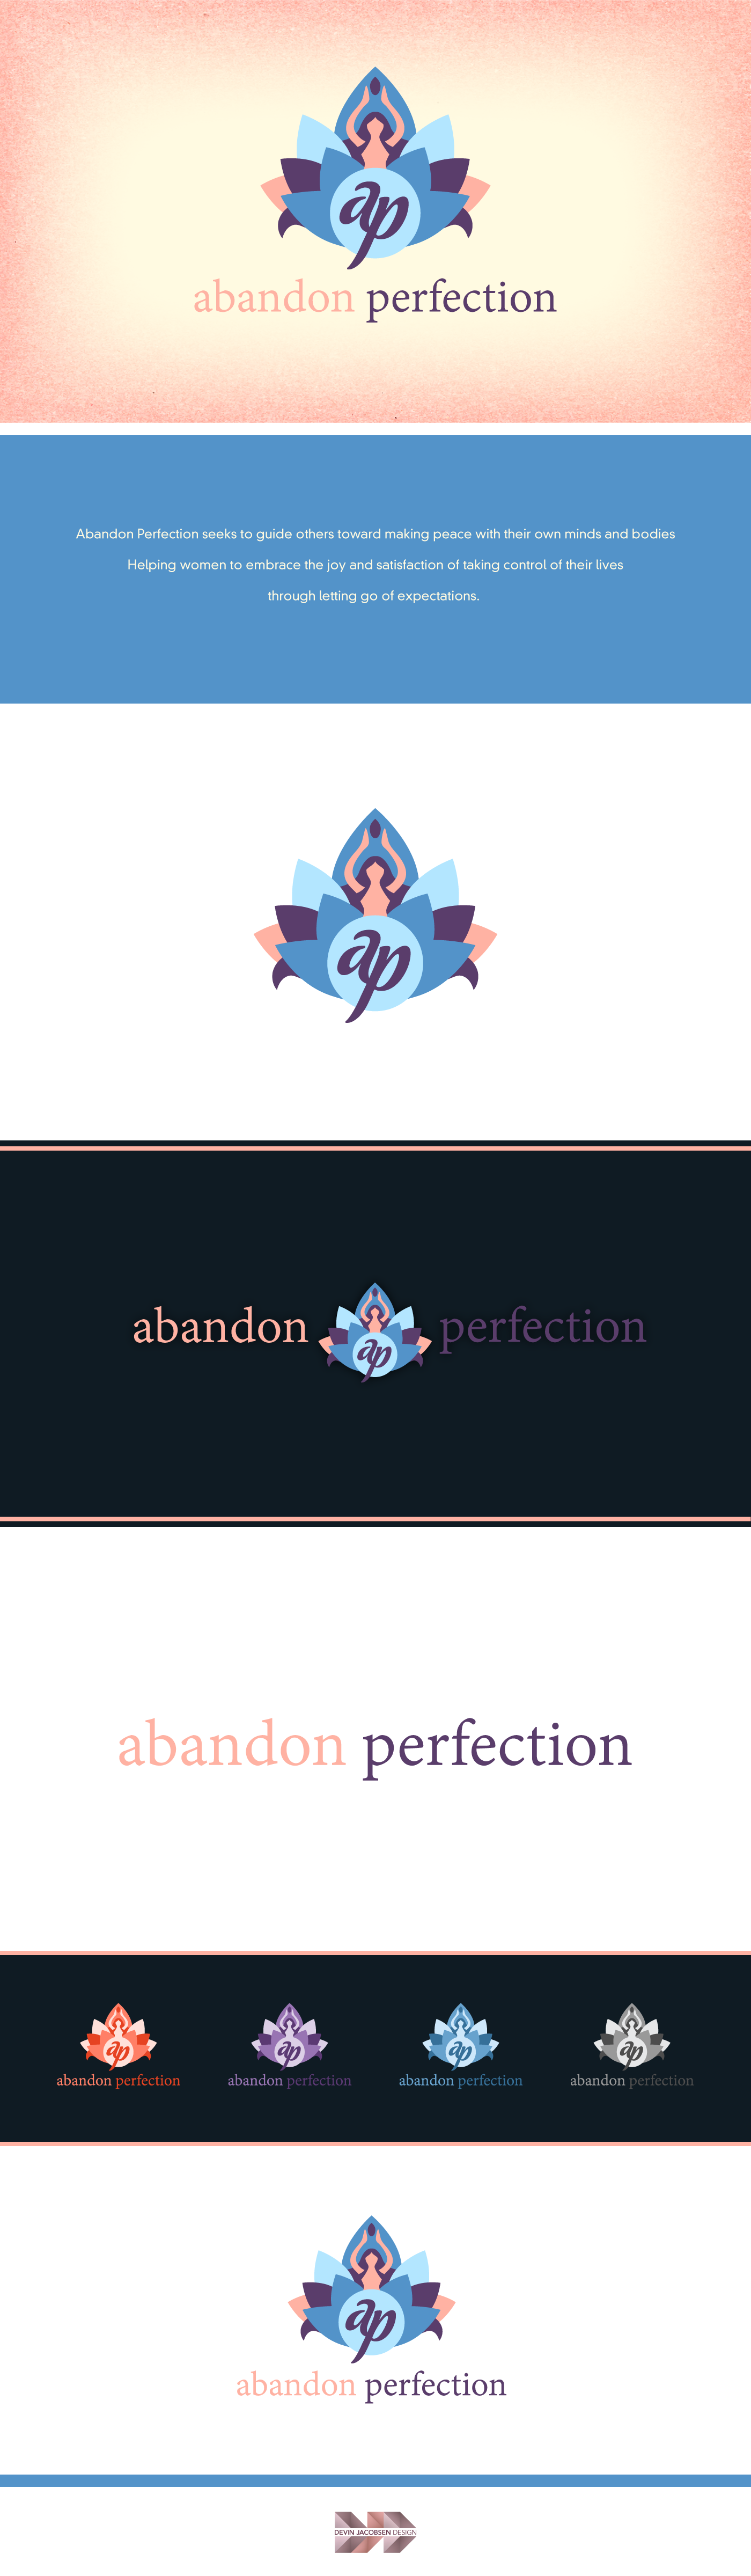 Extremely yonic logo for Abandon Perfection life coaching service.